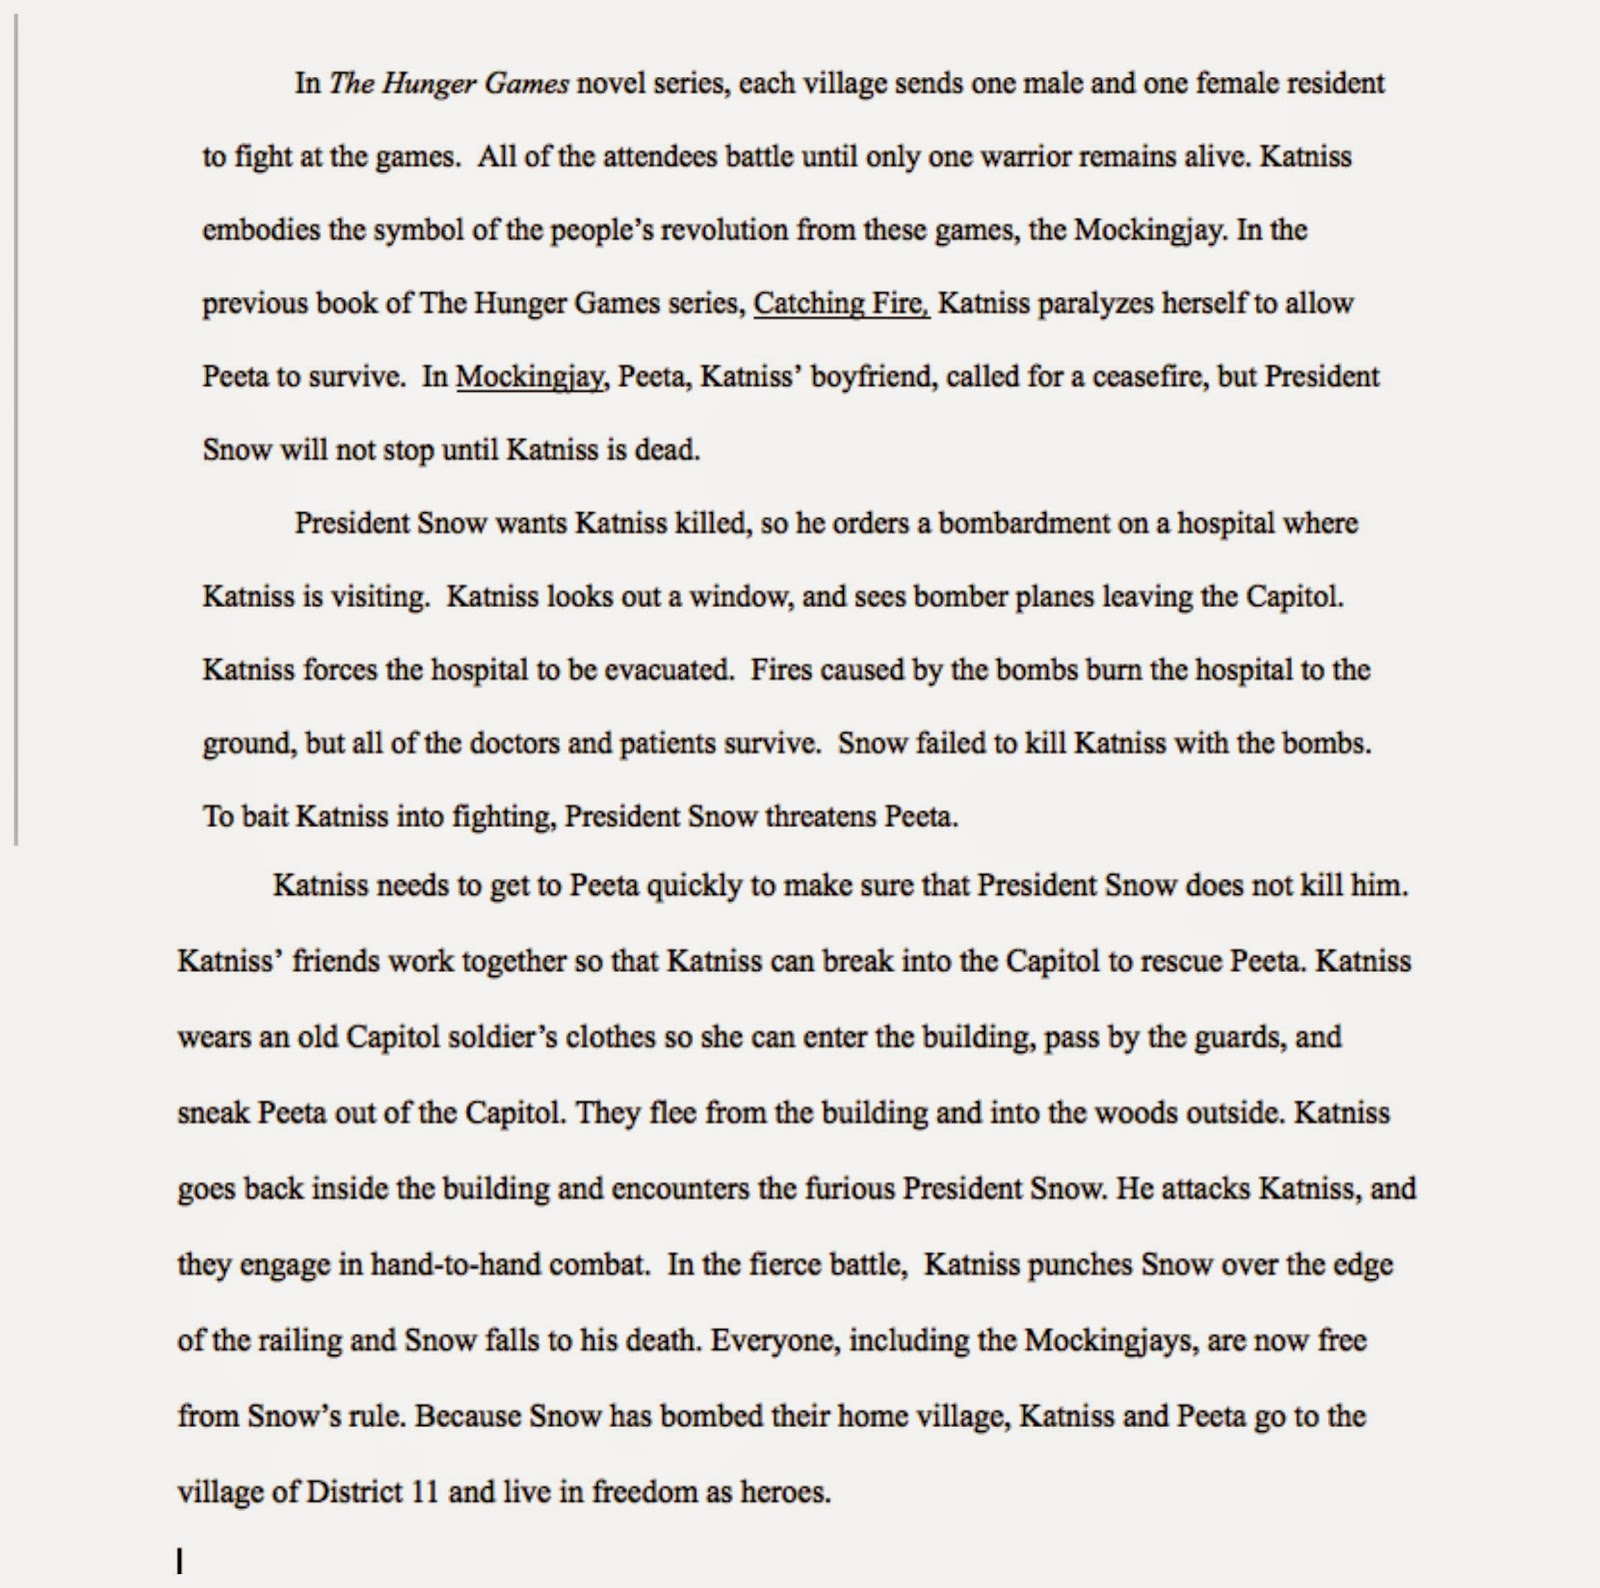 011 Essay Example The Hunger Games Book Review Imposing Full